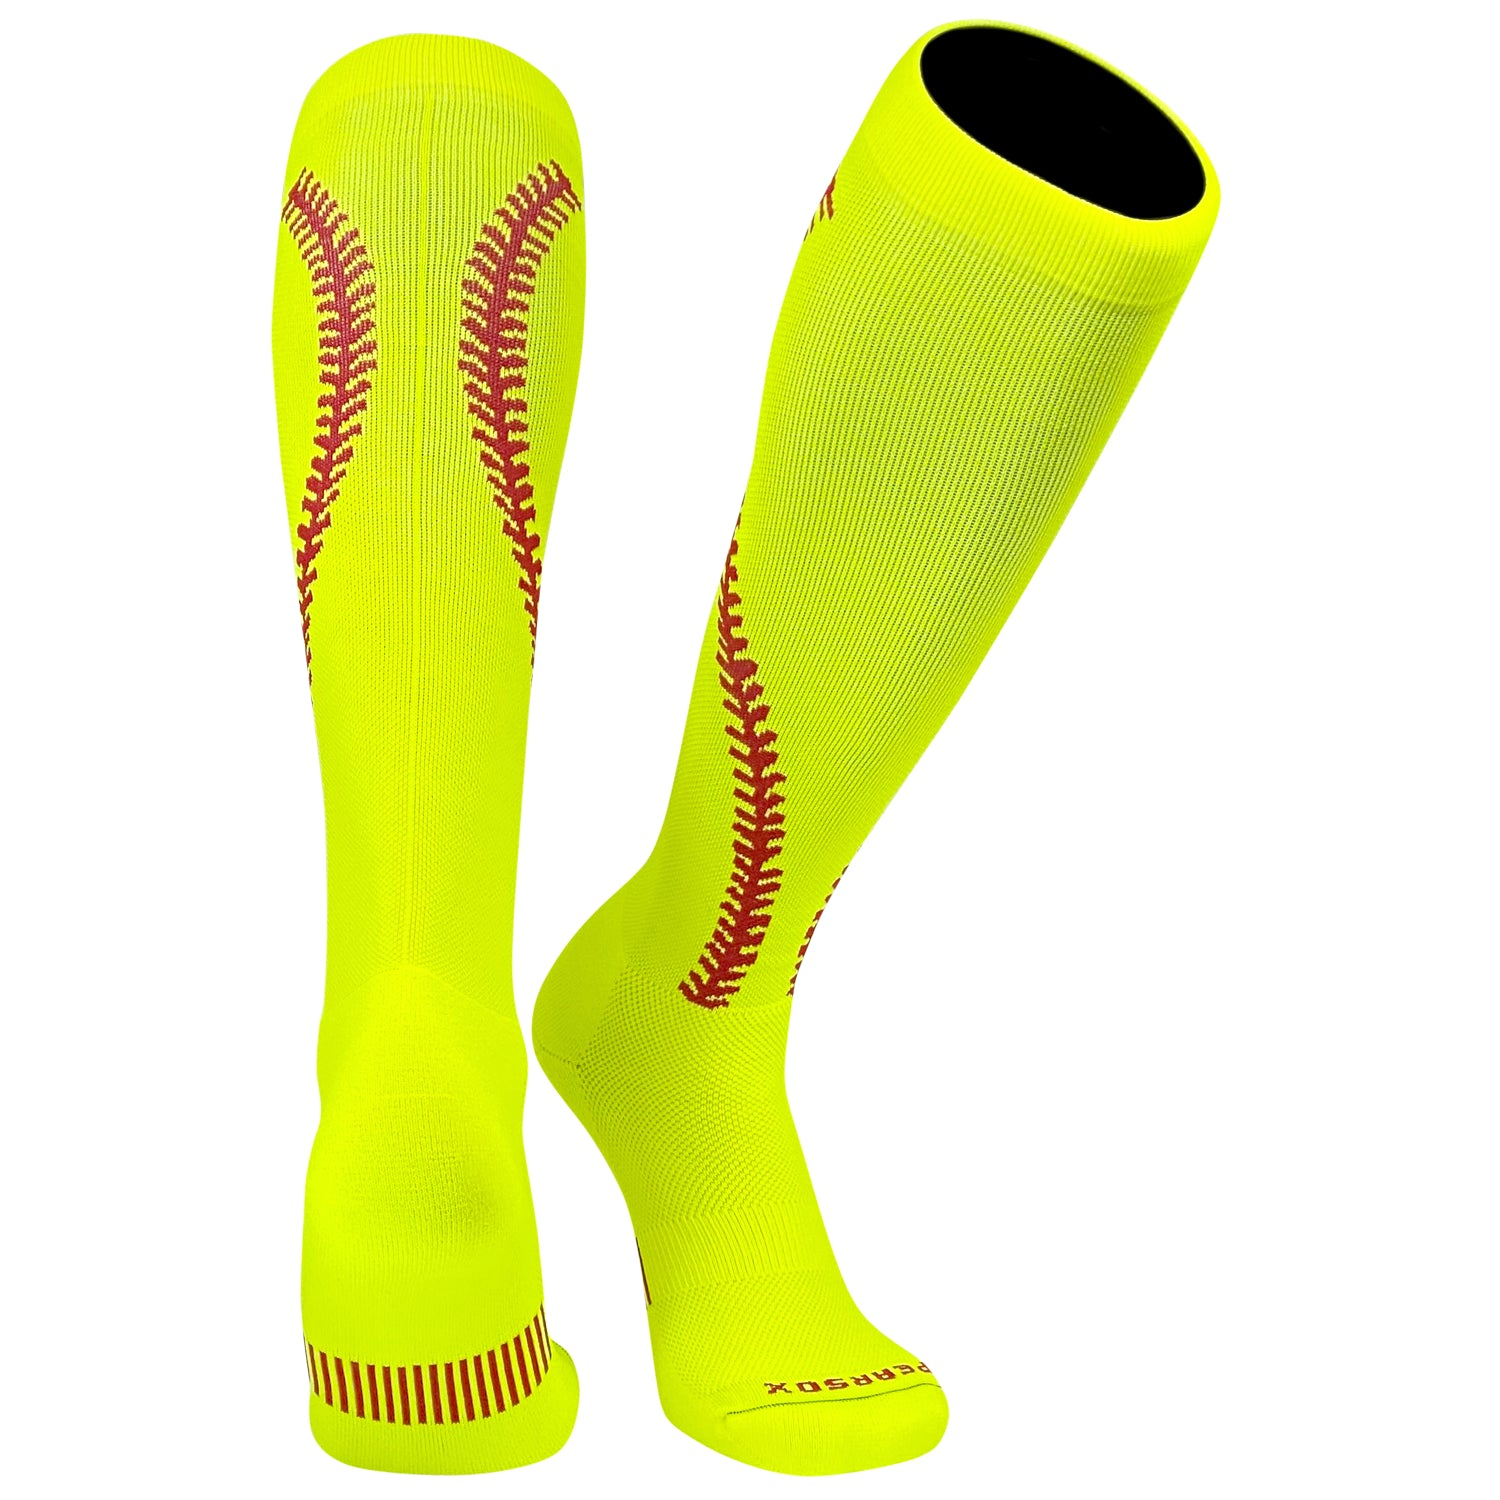 Pearsox Softball Stitch Neon Yellow with Red Stitching Knee high Socks